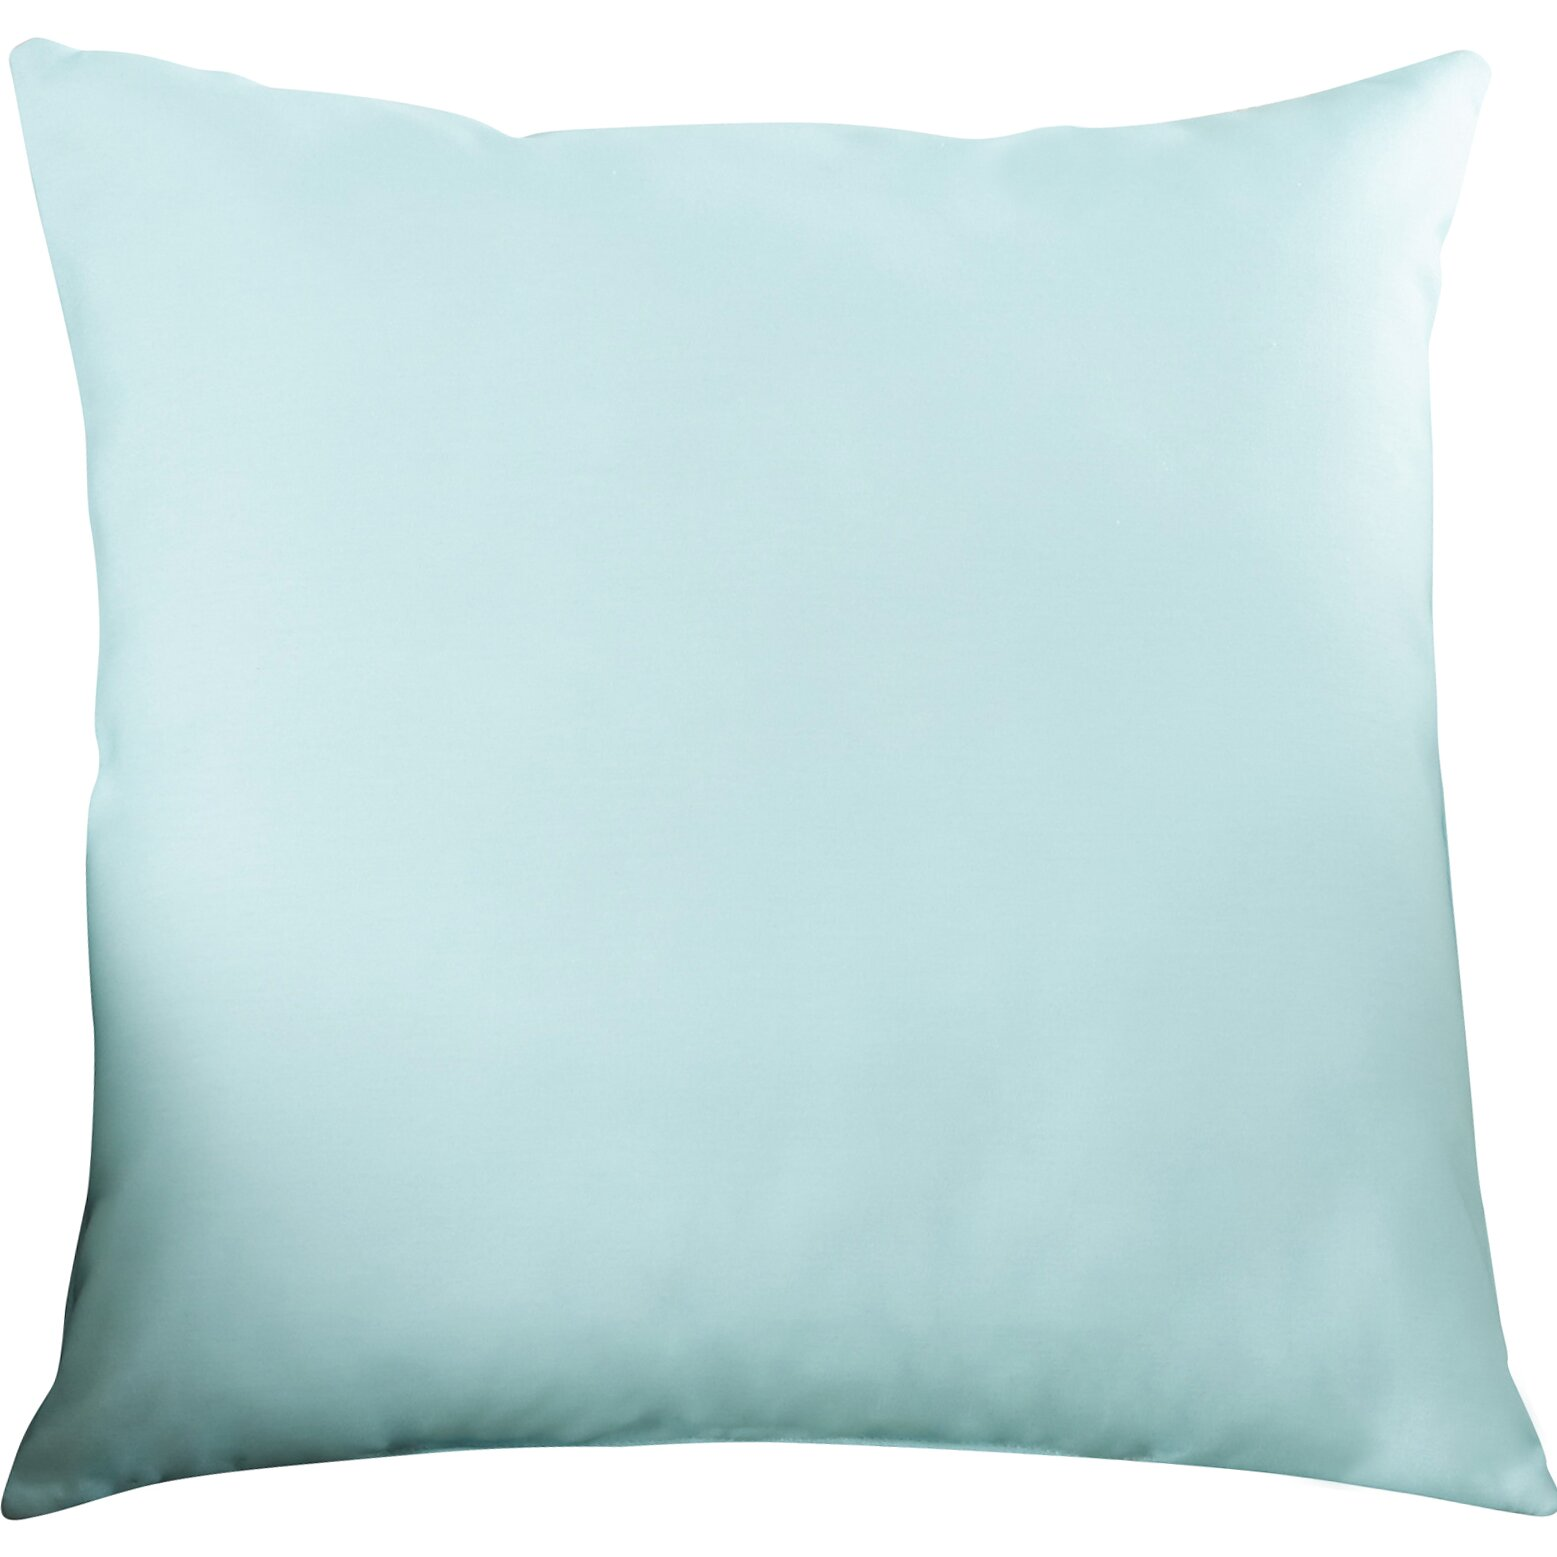 Charlton Home Ballard Linen Throw Pillow & Reviews Wayfair.ca